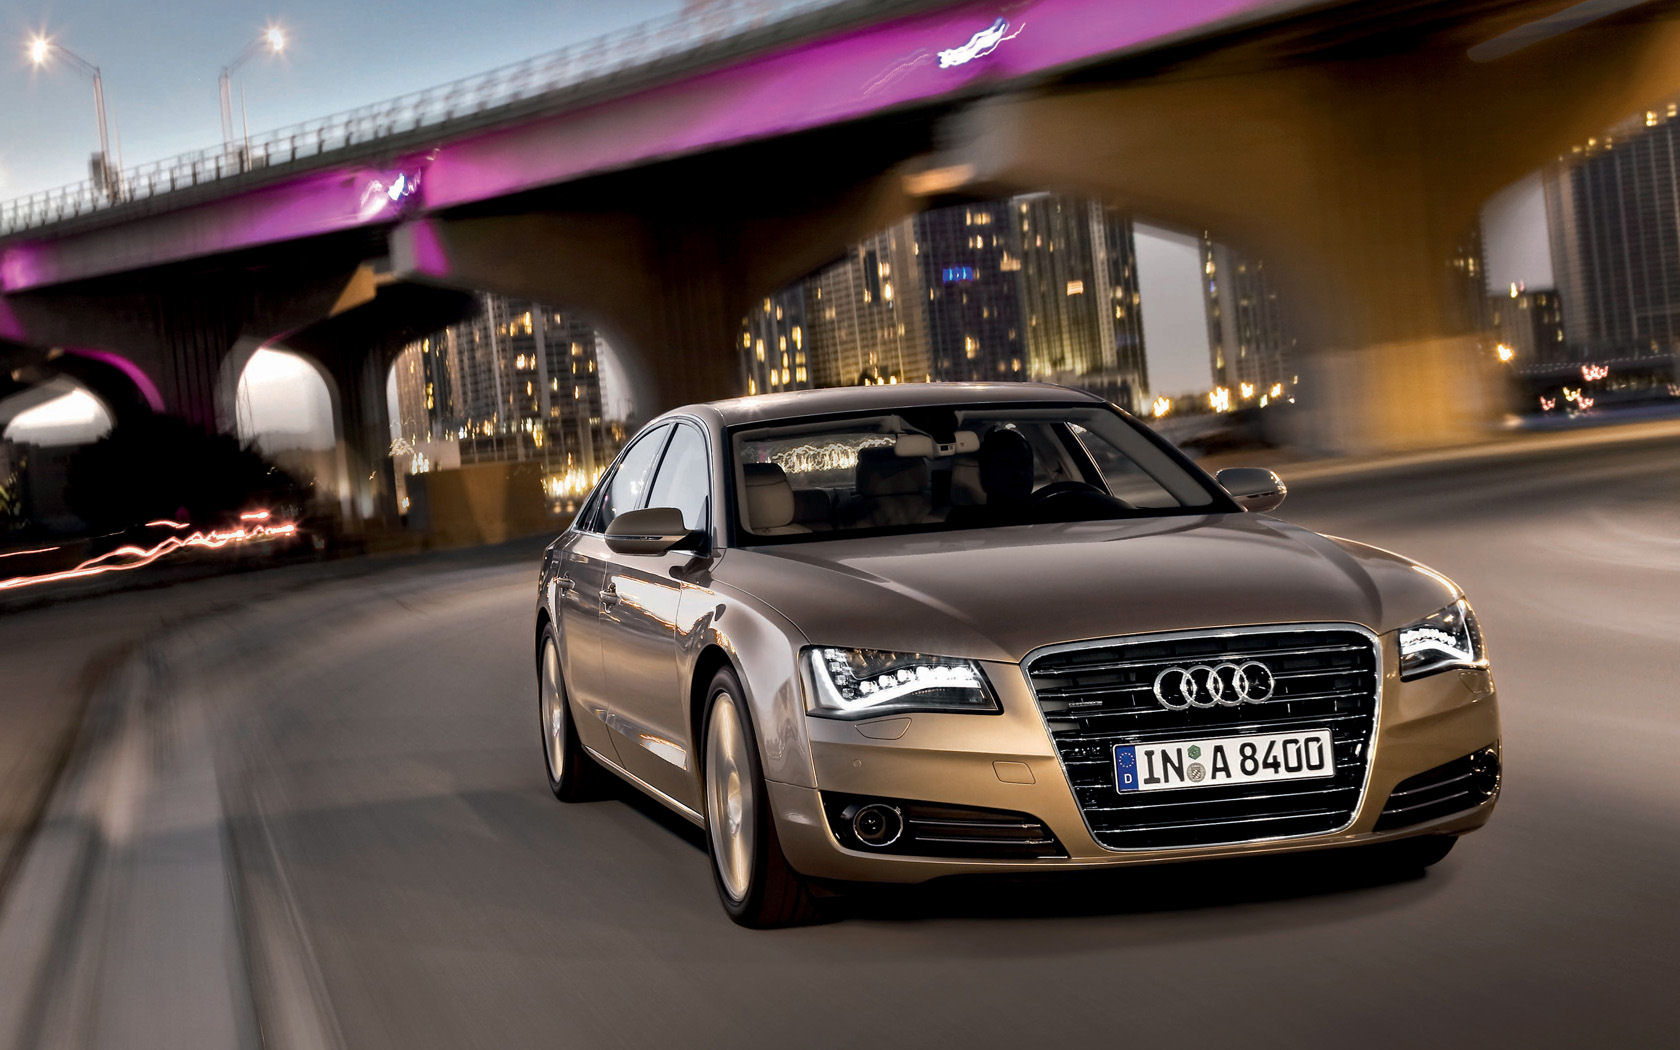 Audi A8 Wallpapers and Background Images   stmednet 1680x1050